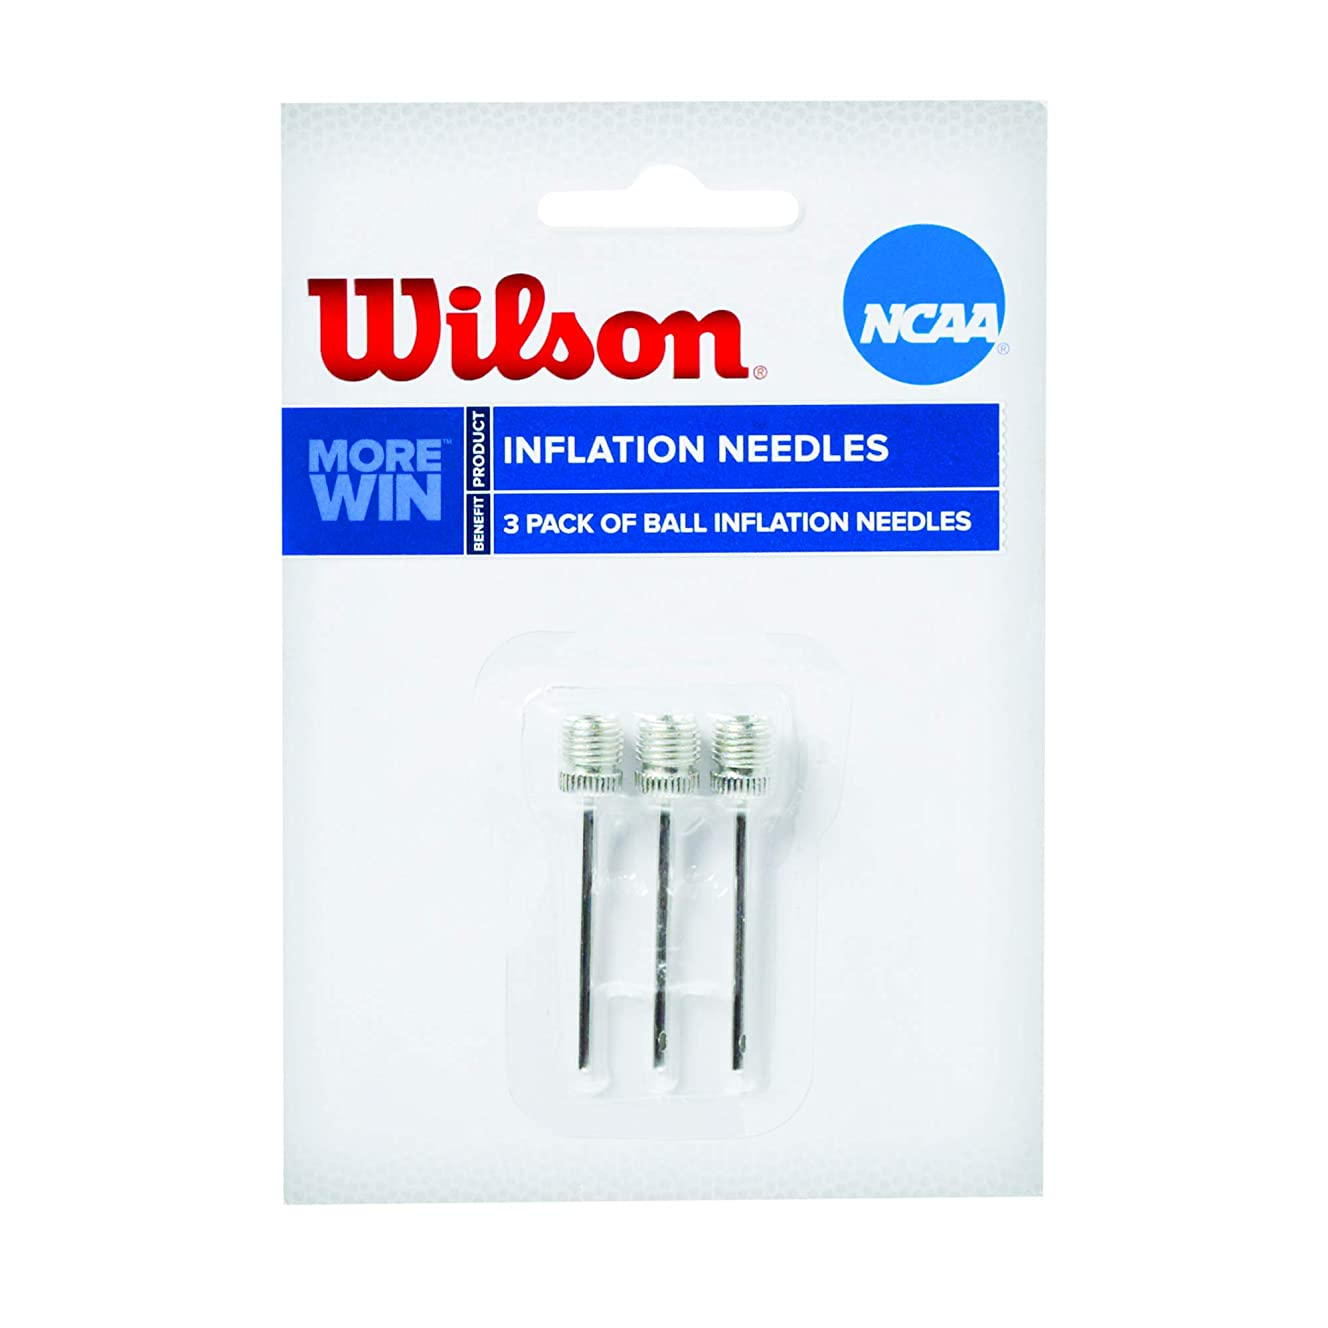 Wilson NCAA Inflation Needles